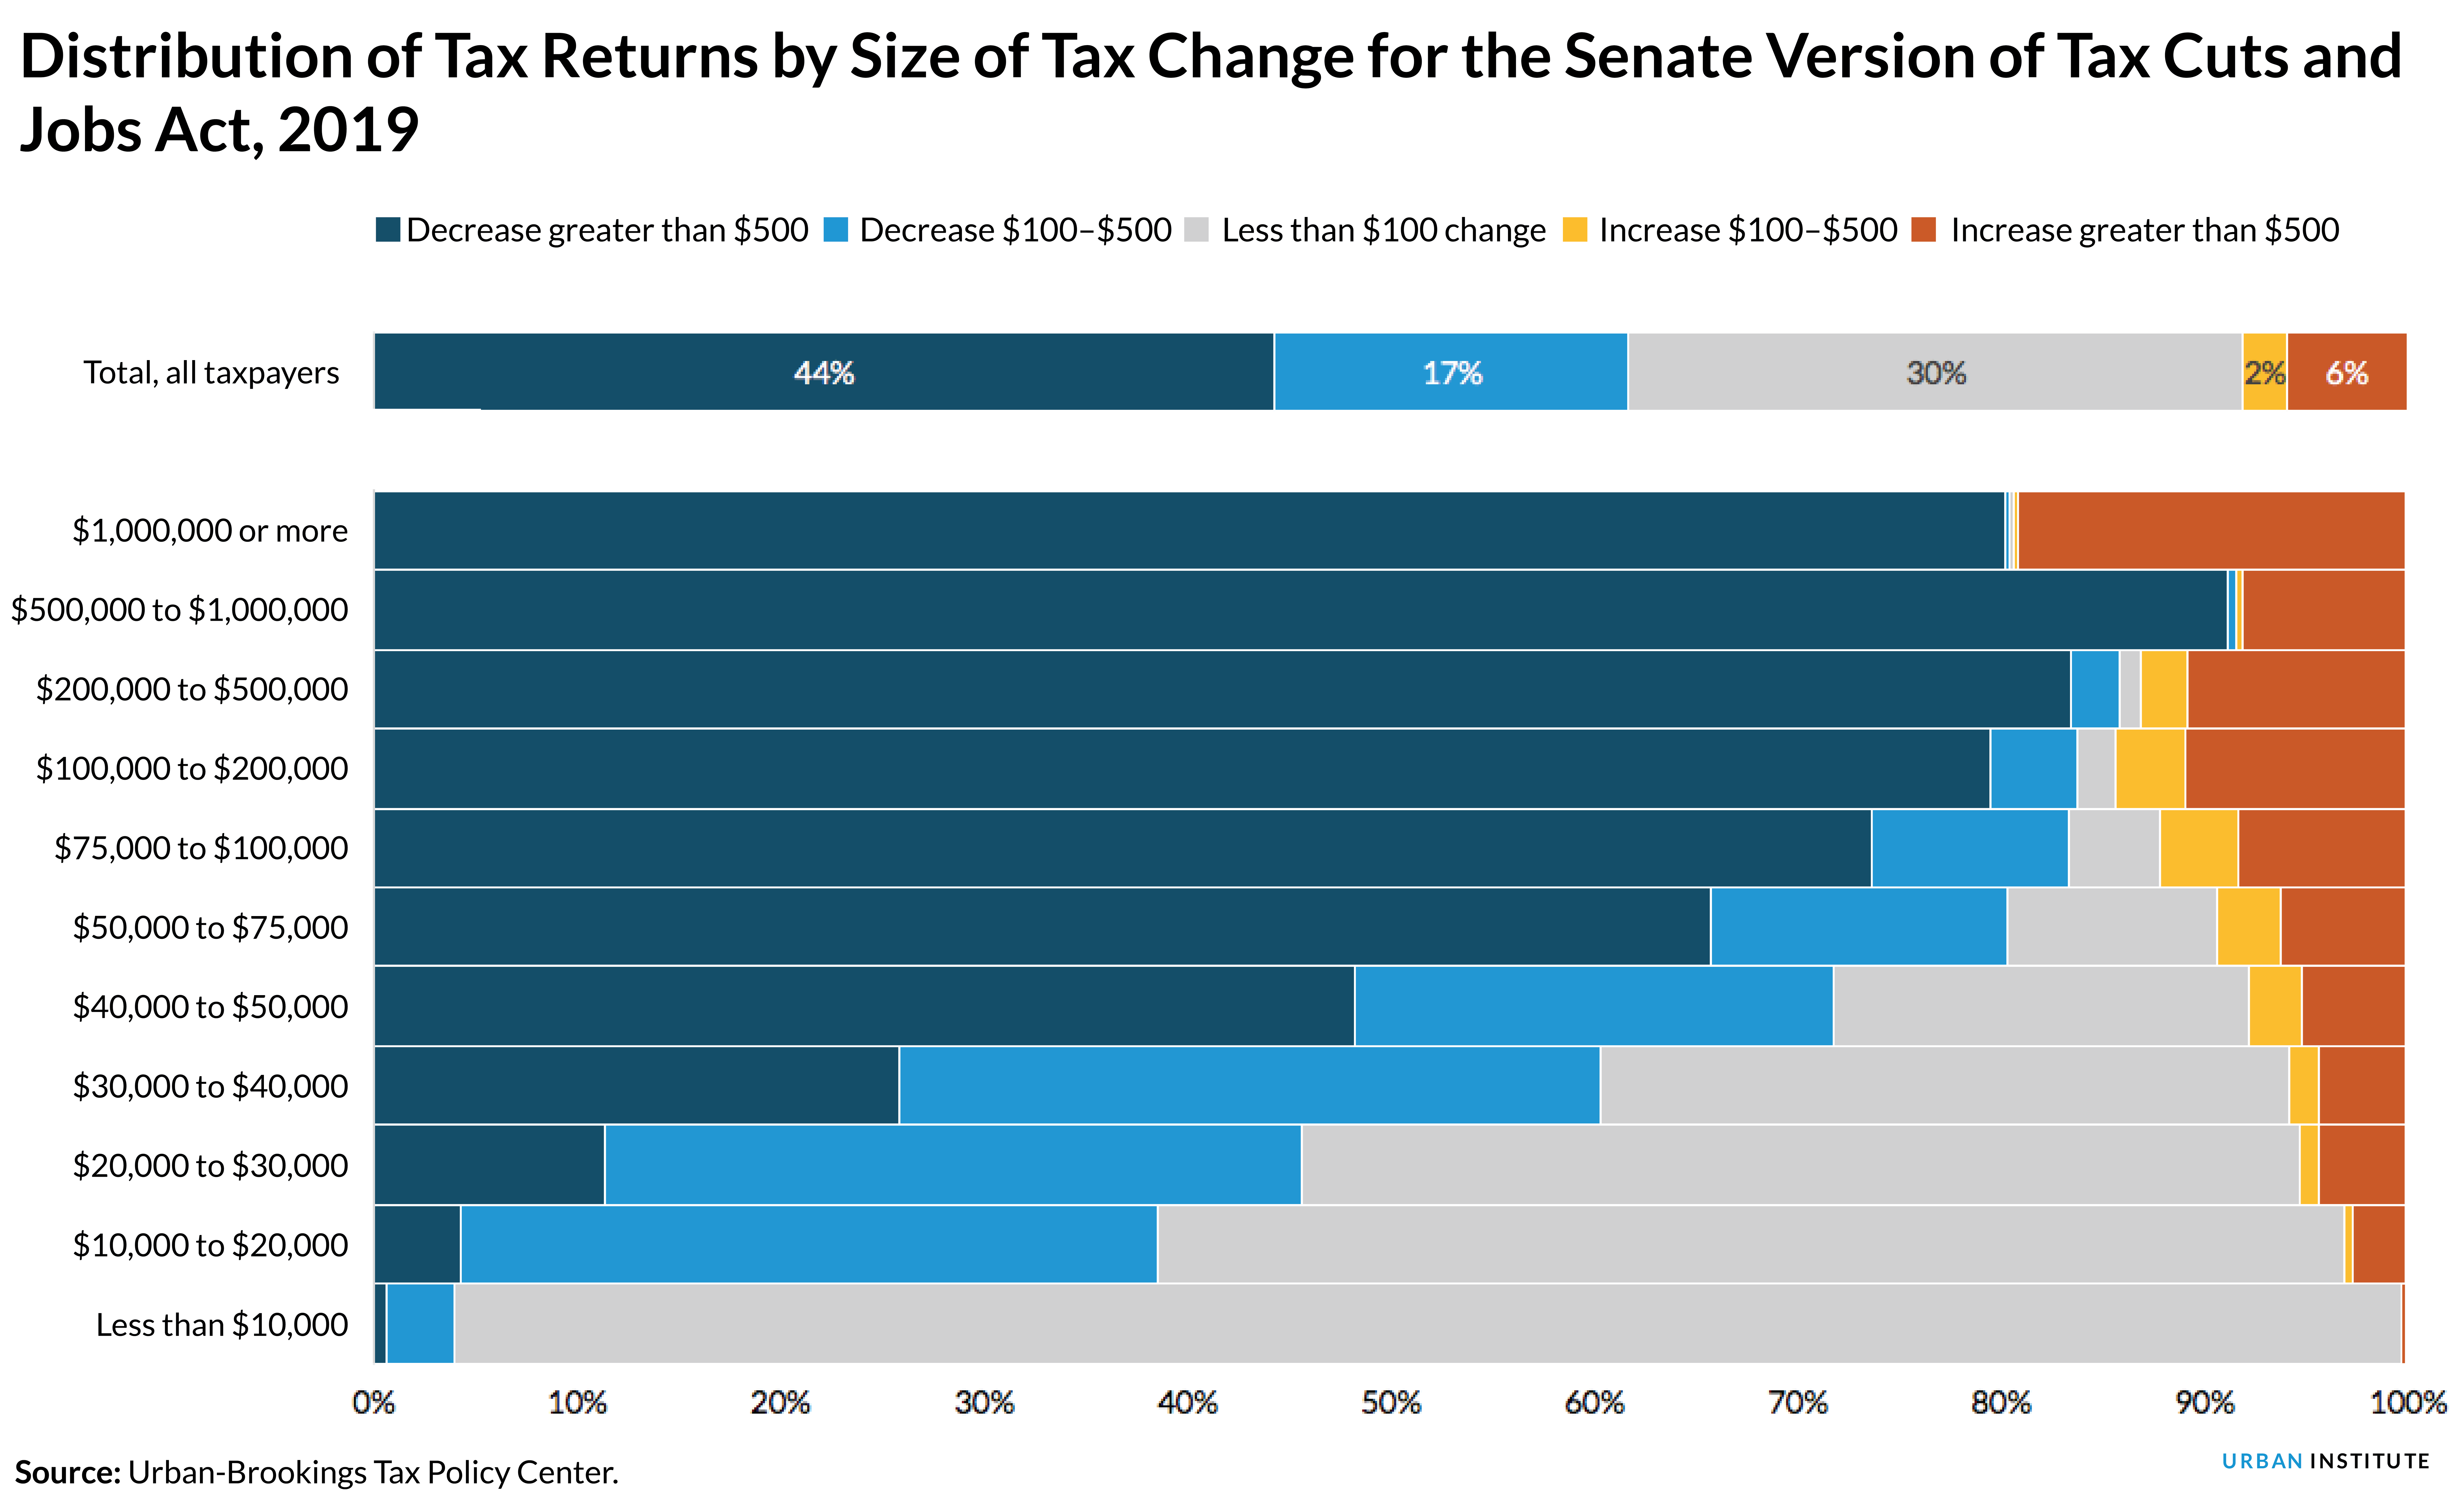 distribution of tax returns by size of tax change under the Senate version of the Tax Cuts and Jobs Act